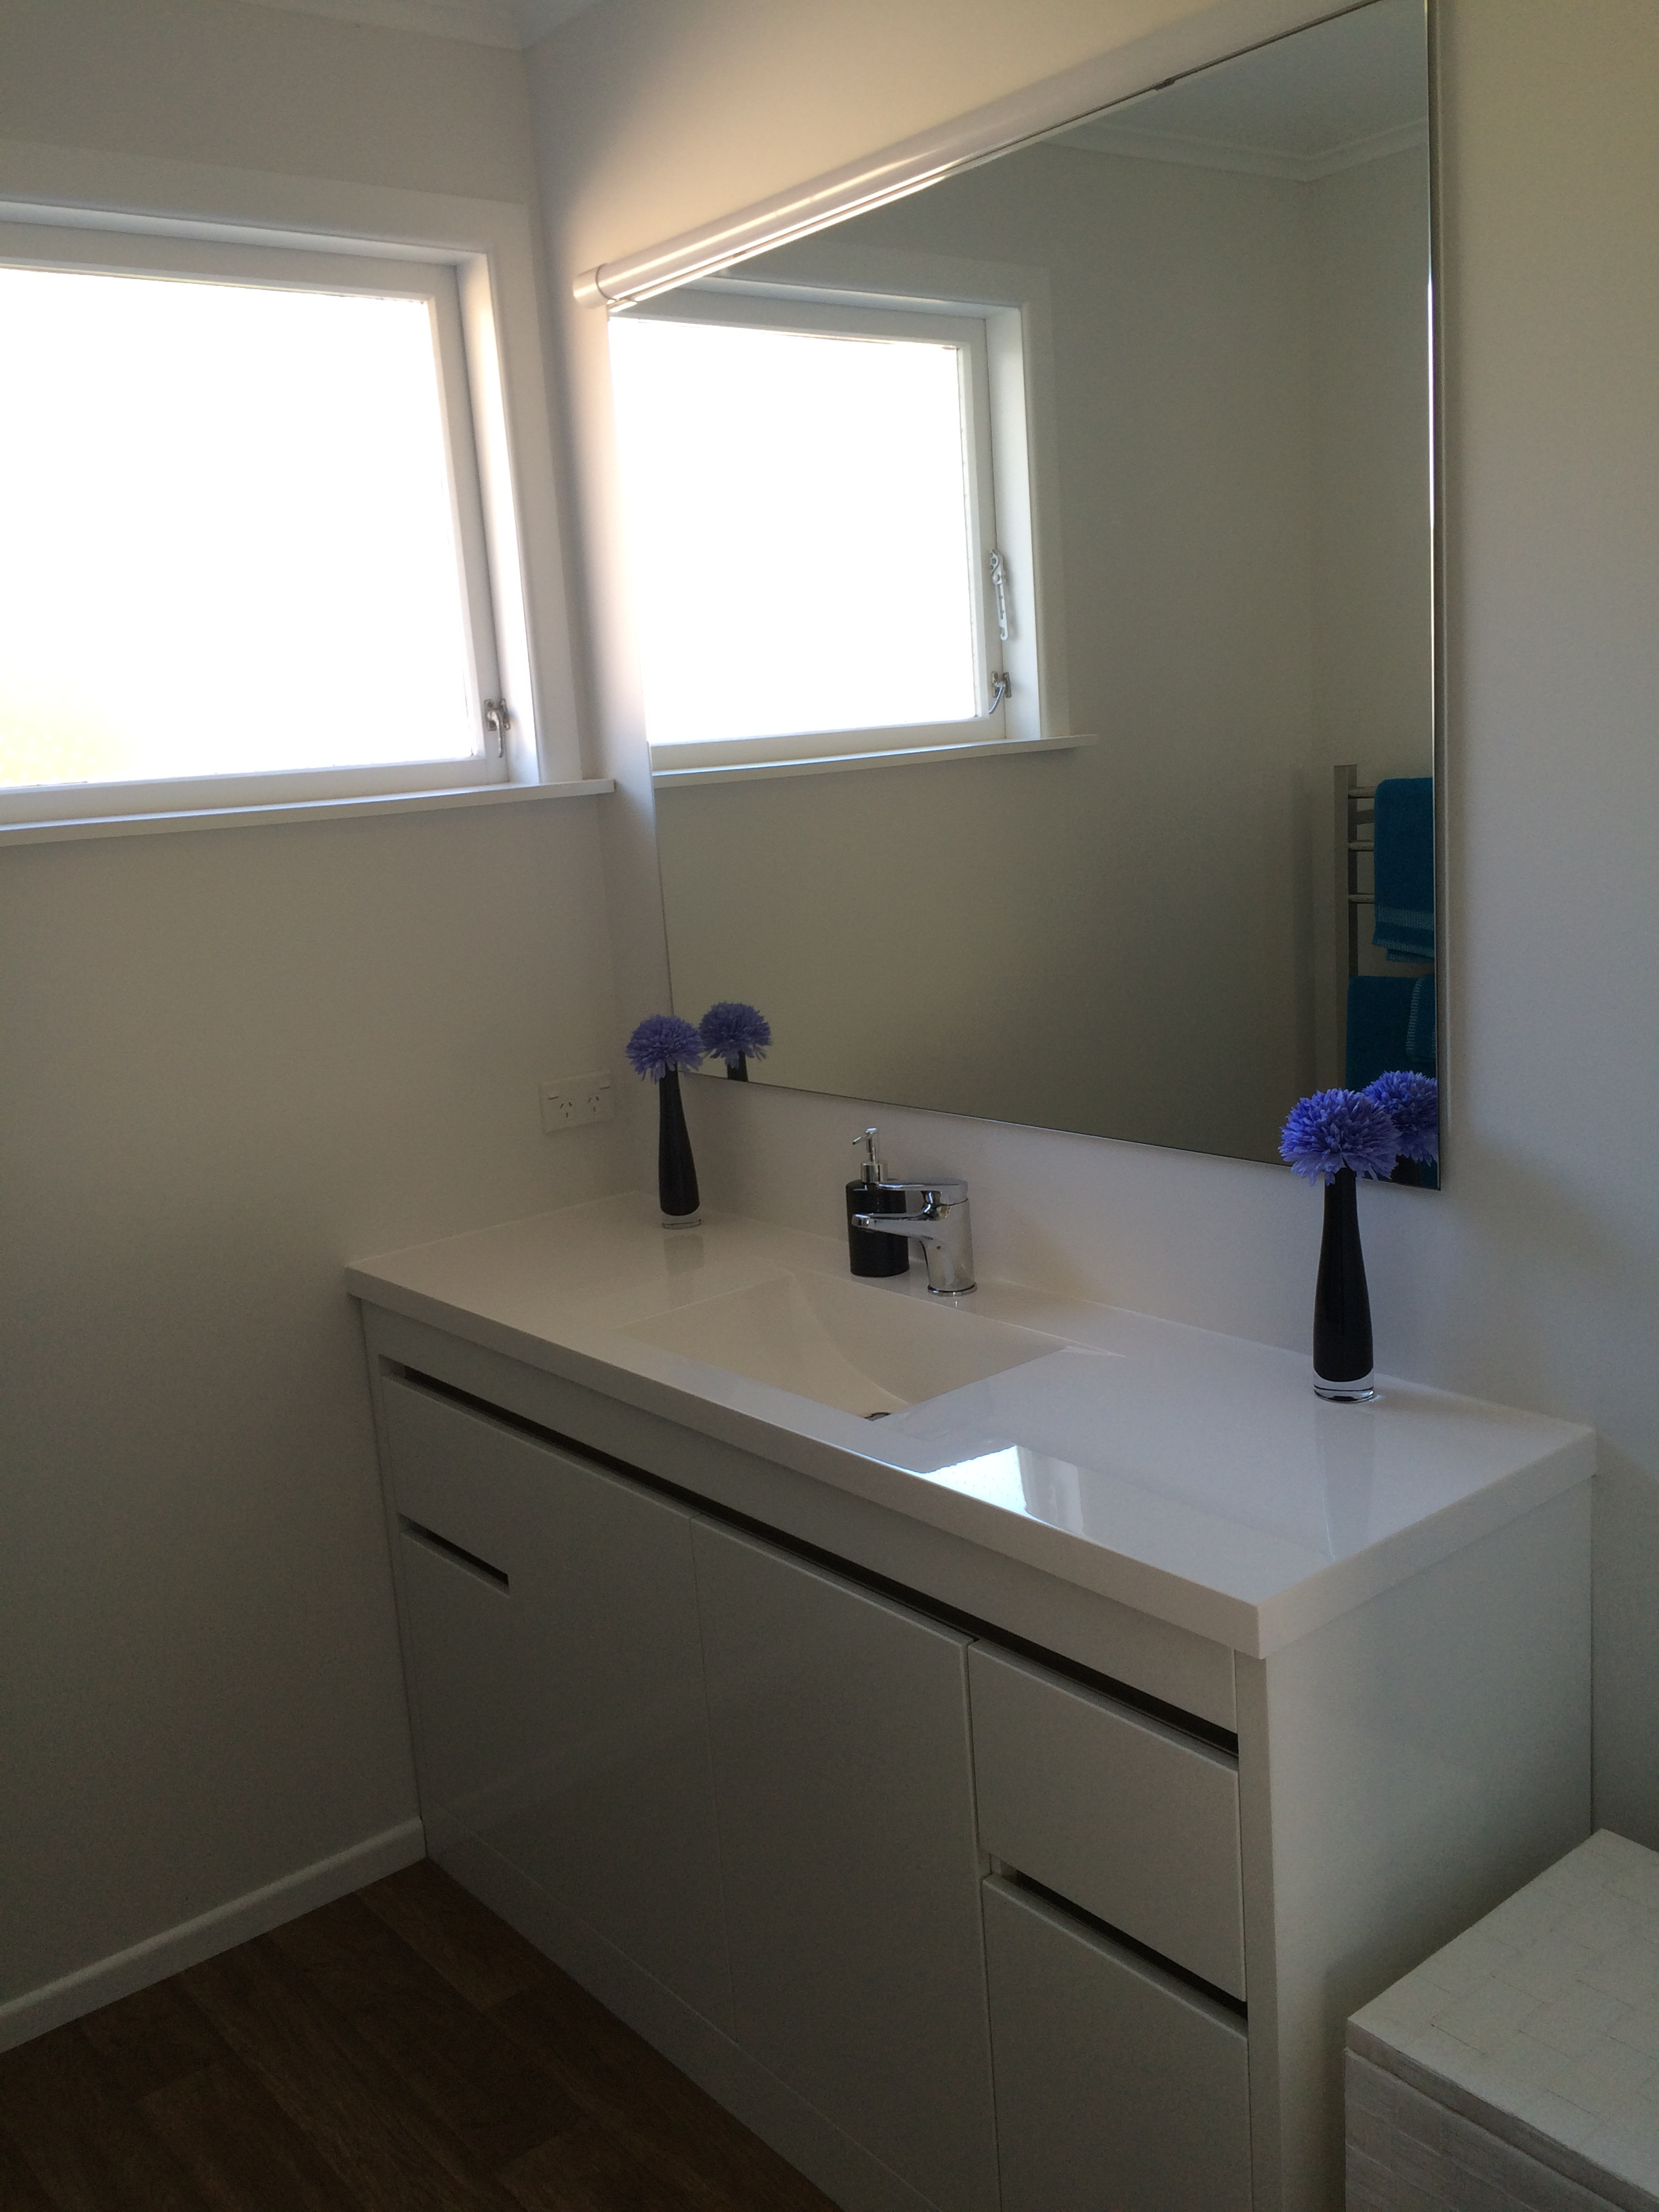 A bigger bathroom in Forrest HIll Bathroom renovation photo